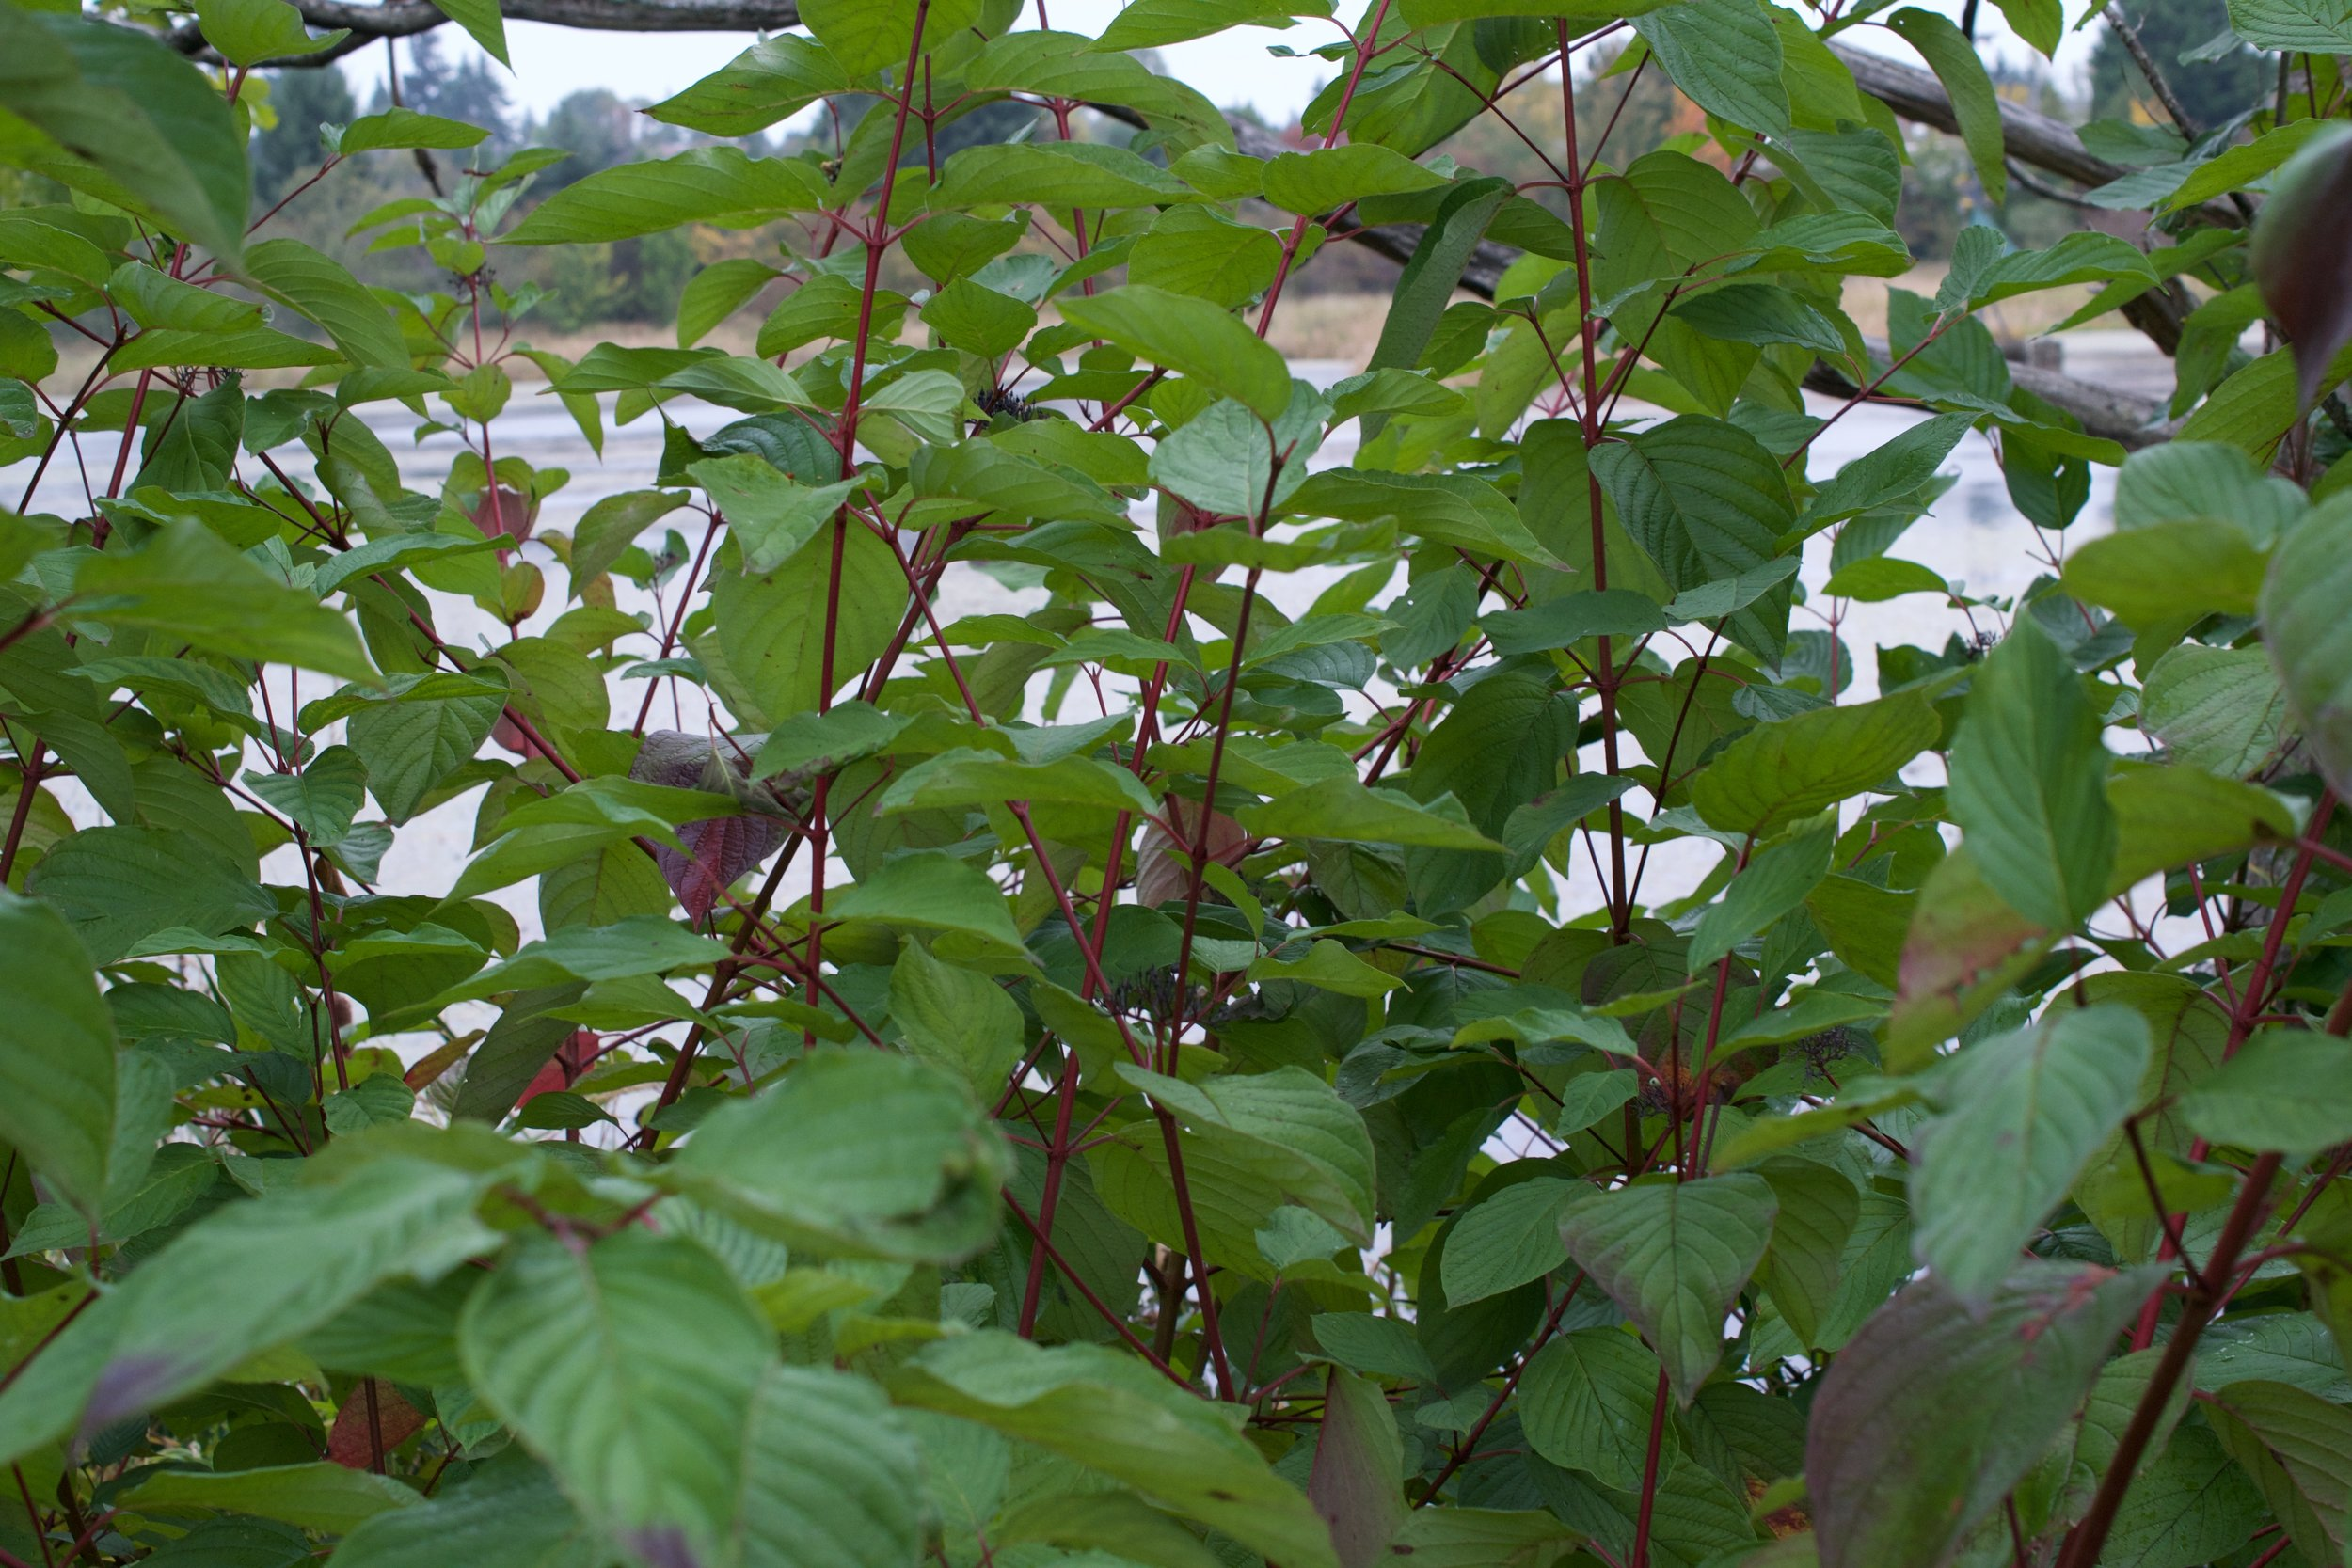 Red Osier Dogwood grows on the edges of water or moist ground and has brilliant red stems in the summer and fall.